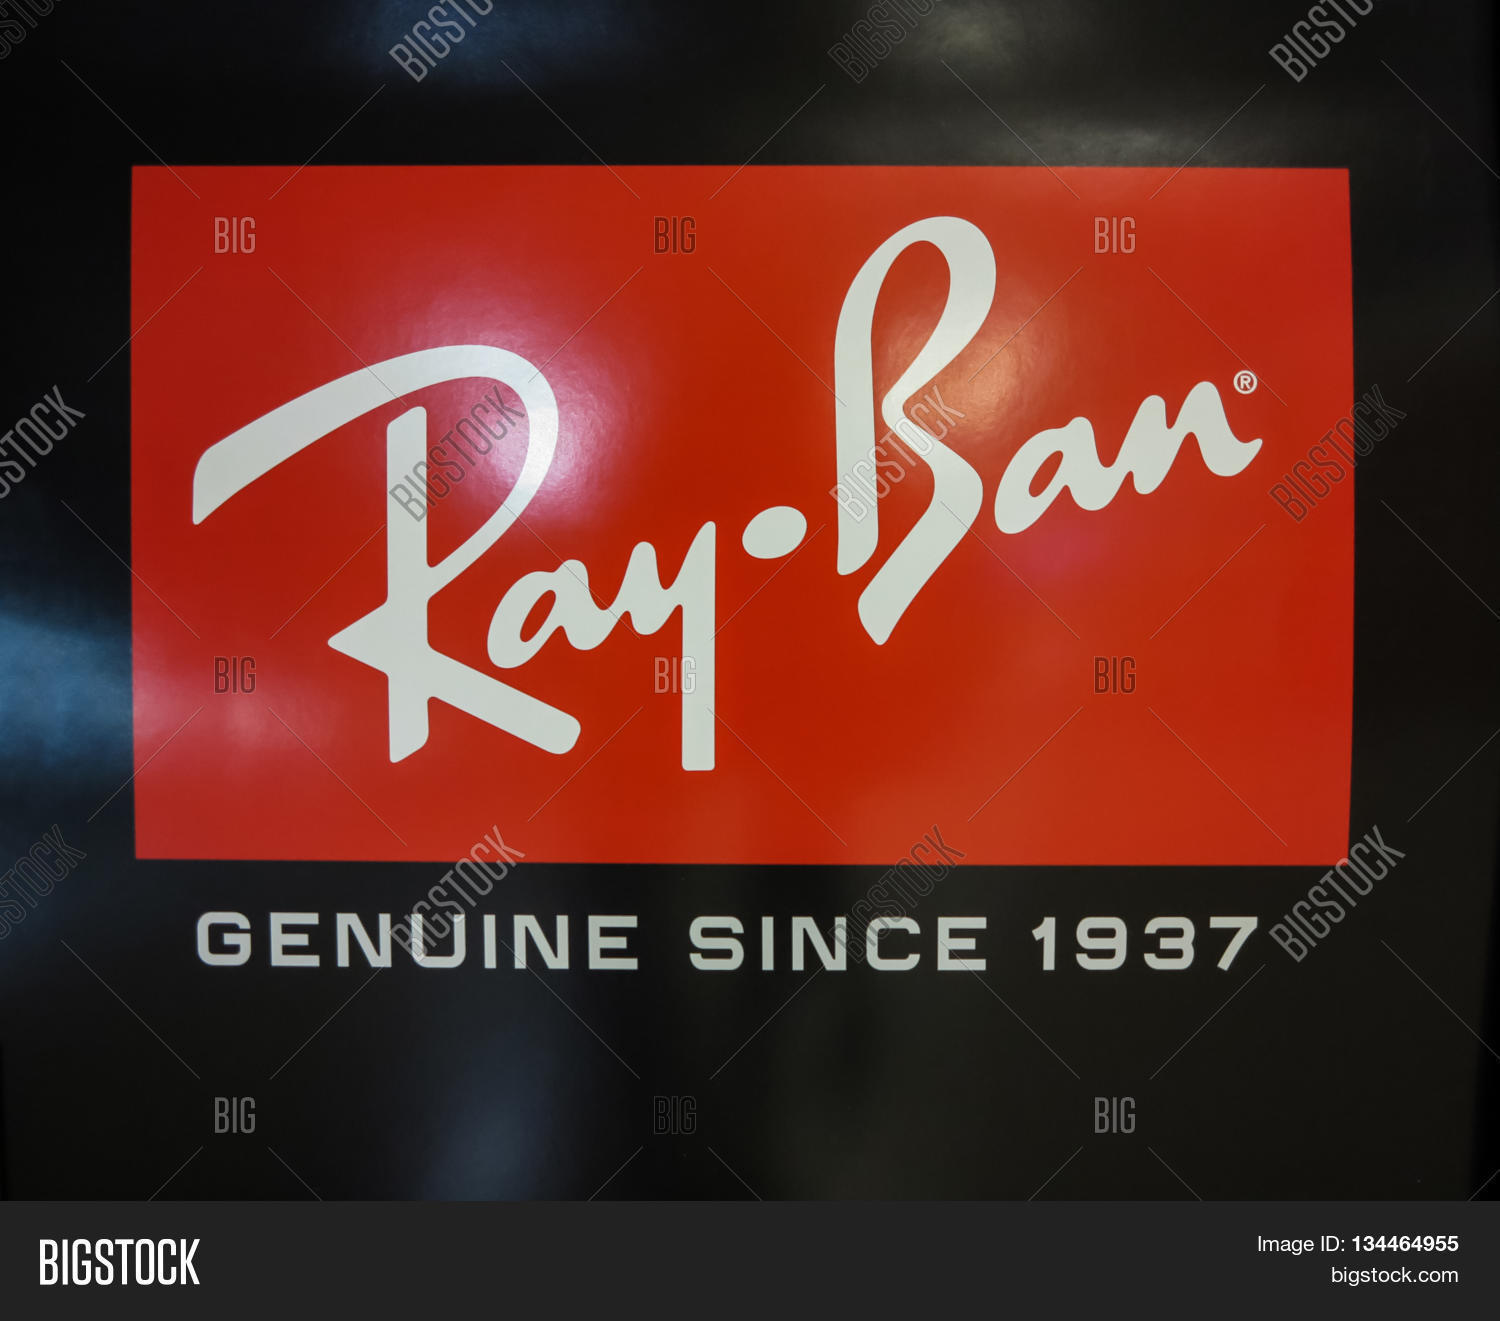 c116259e95 ALBERTA CANADA - SEPTEMBER 20 2014  Ray-Ban logo. It is a brand of  sunglasses and eyeglasses founded in 1937 by American company Bausch   Lomb.